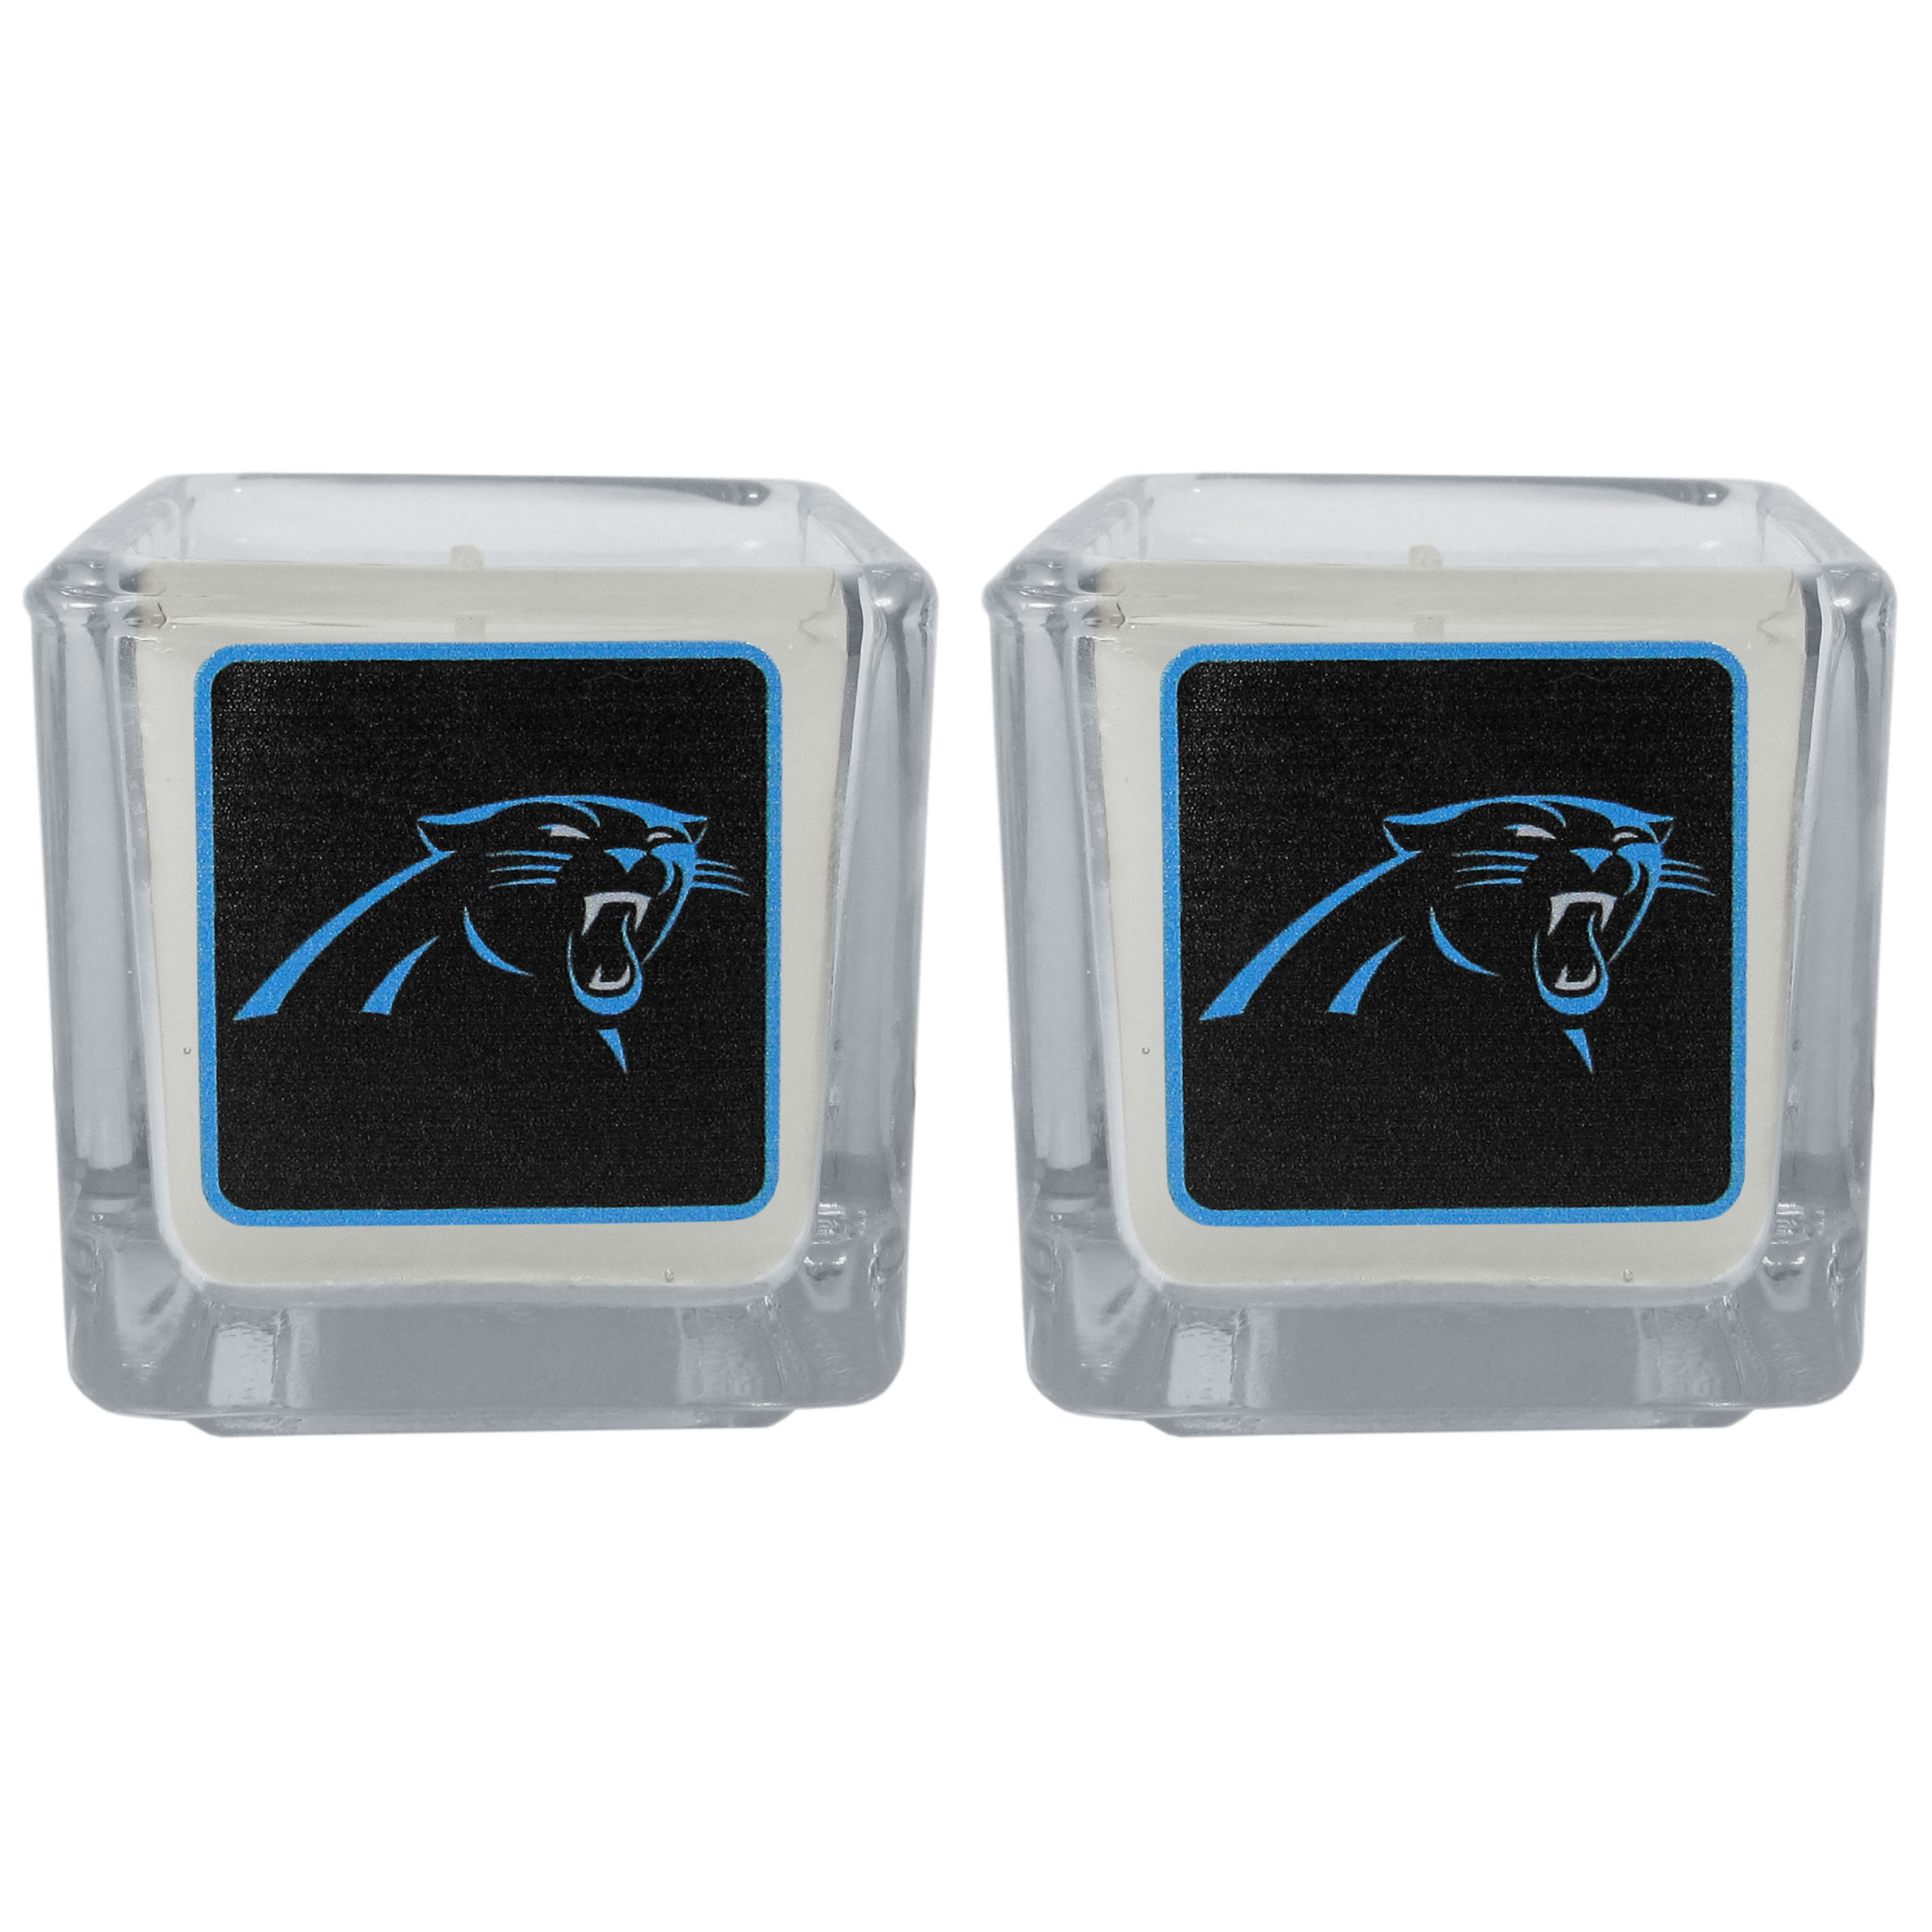 Carolina Panthers Graphics Candle Set - Our candle set features 2 lightly vanilla scented candles with the Carolina Panthers logo expertly printed on front. The candles are 2 inches tall in the votive style.